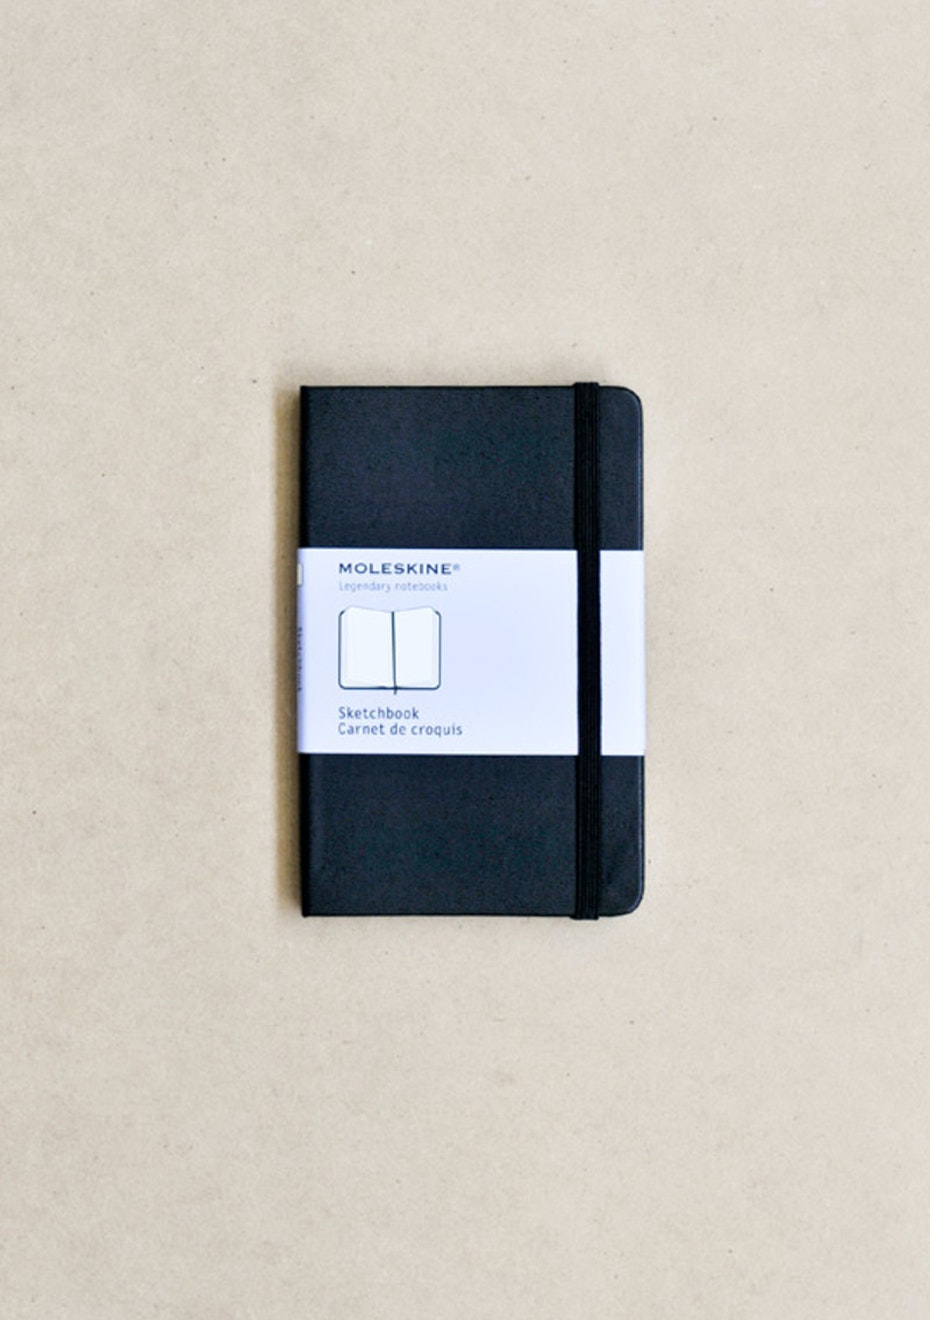 Moleskine - Classic Hard Cover Notebook - Sketchbook - Pocket - Black